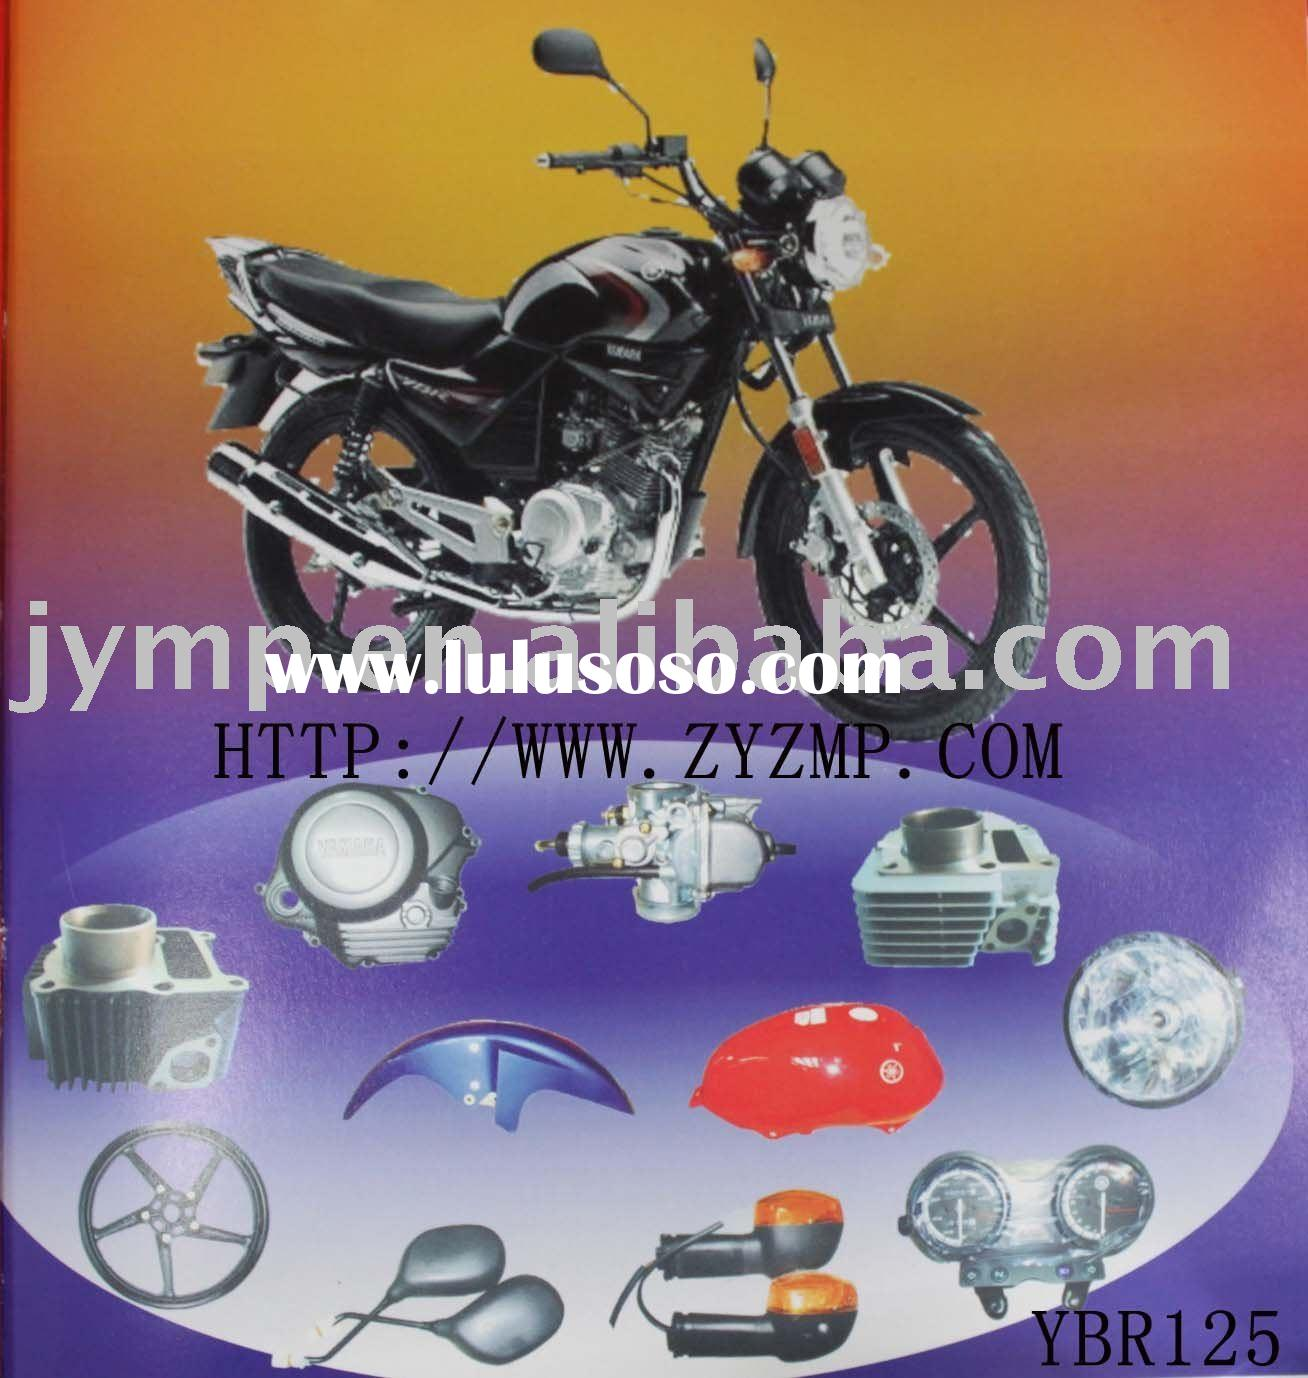 125 CC Motorcycle parts(YBR125,engine parts, body kits,electrict parts)